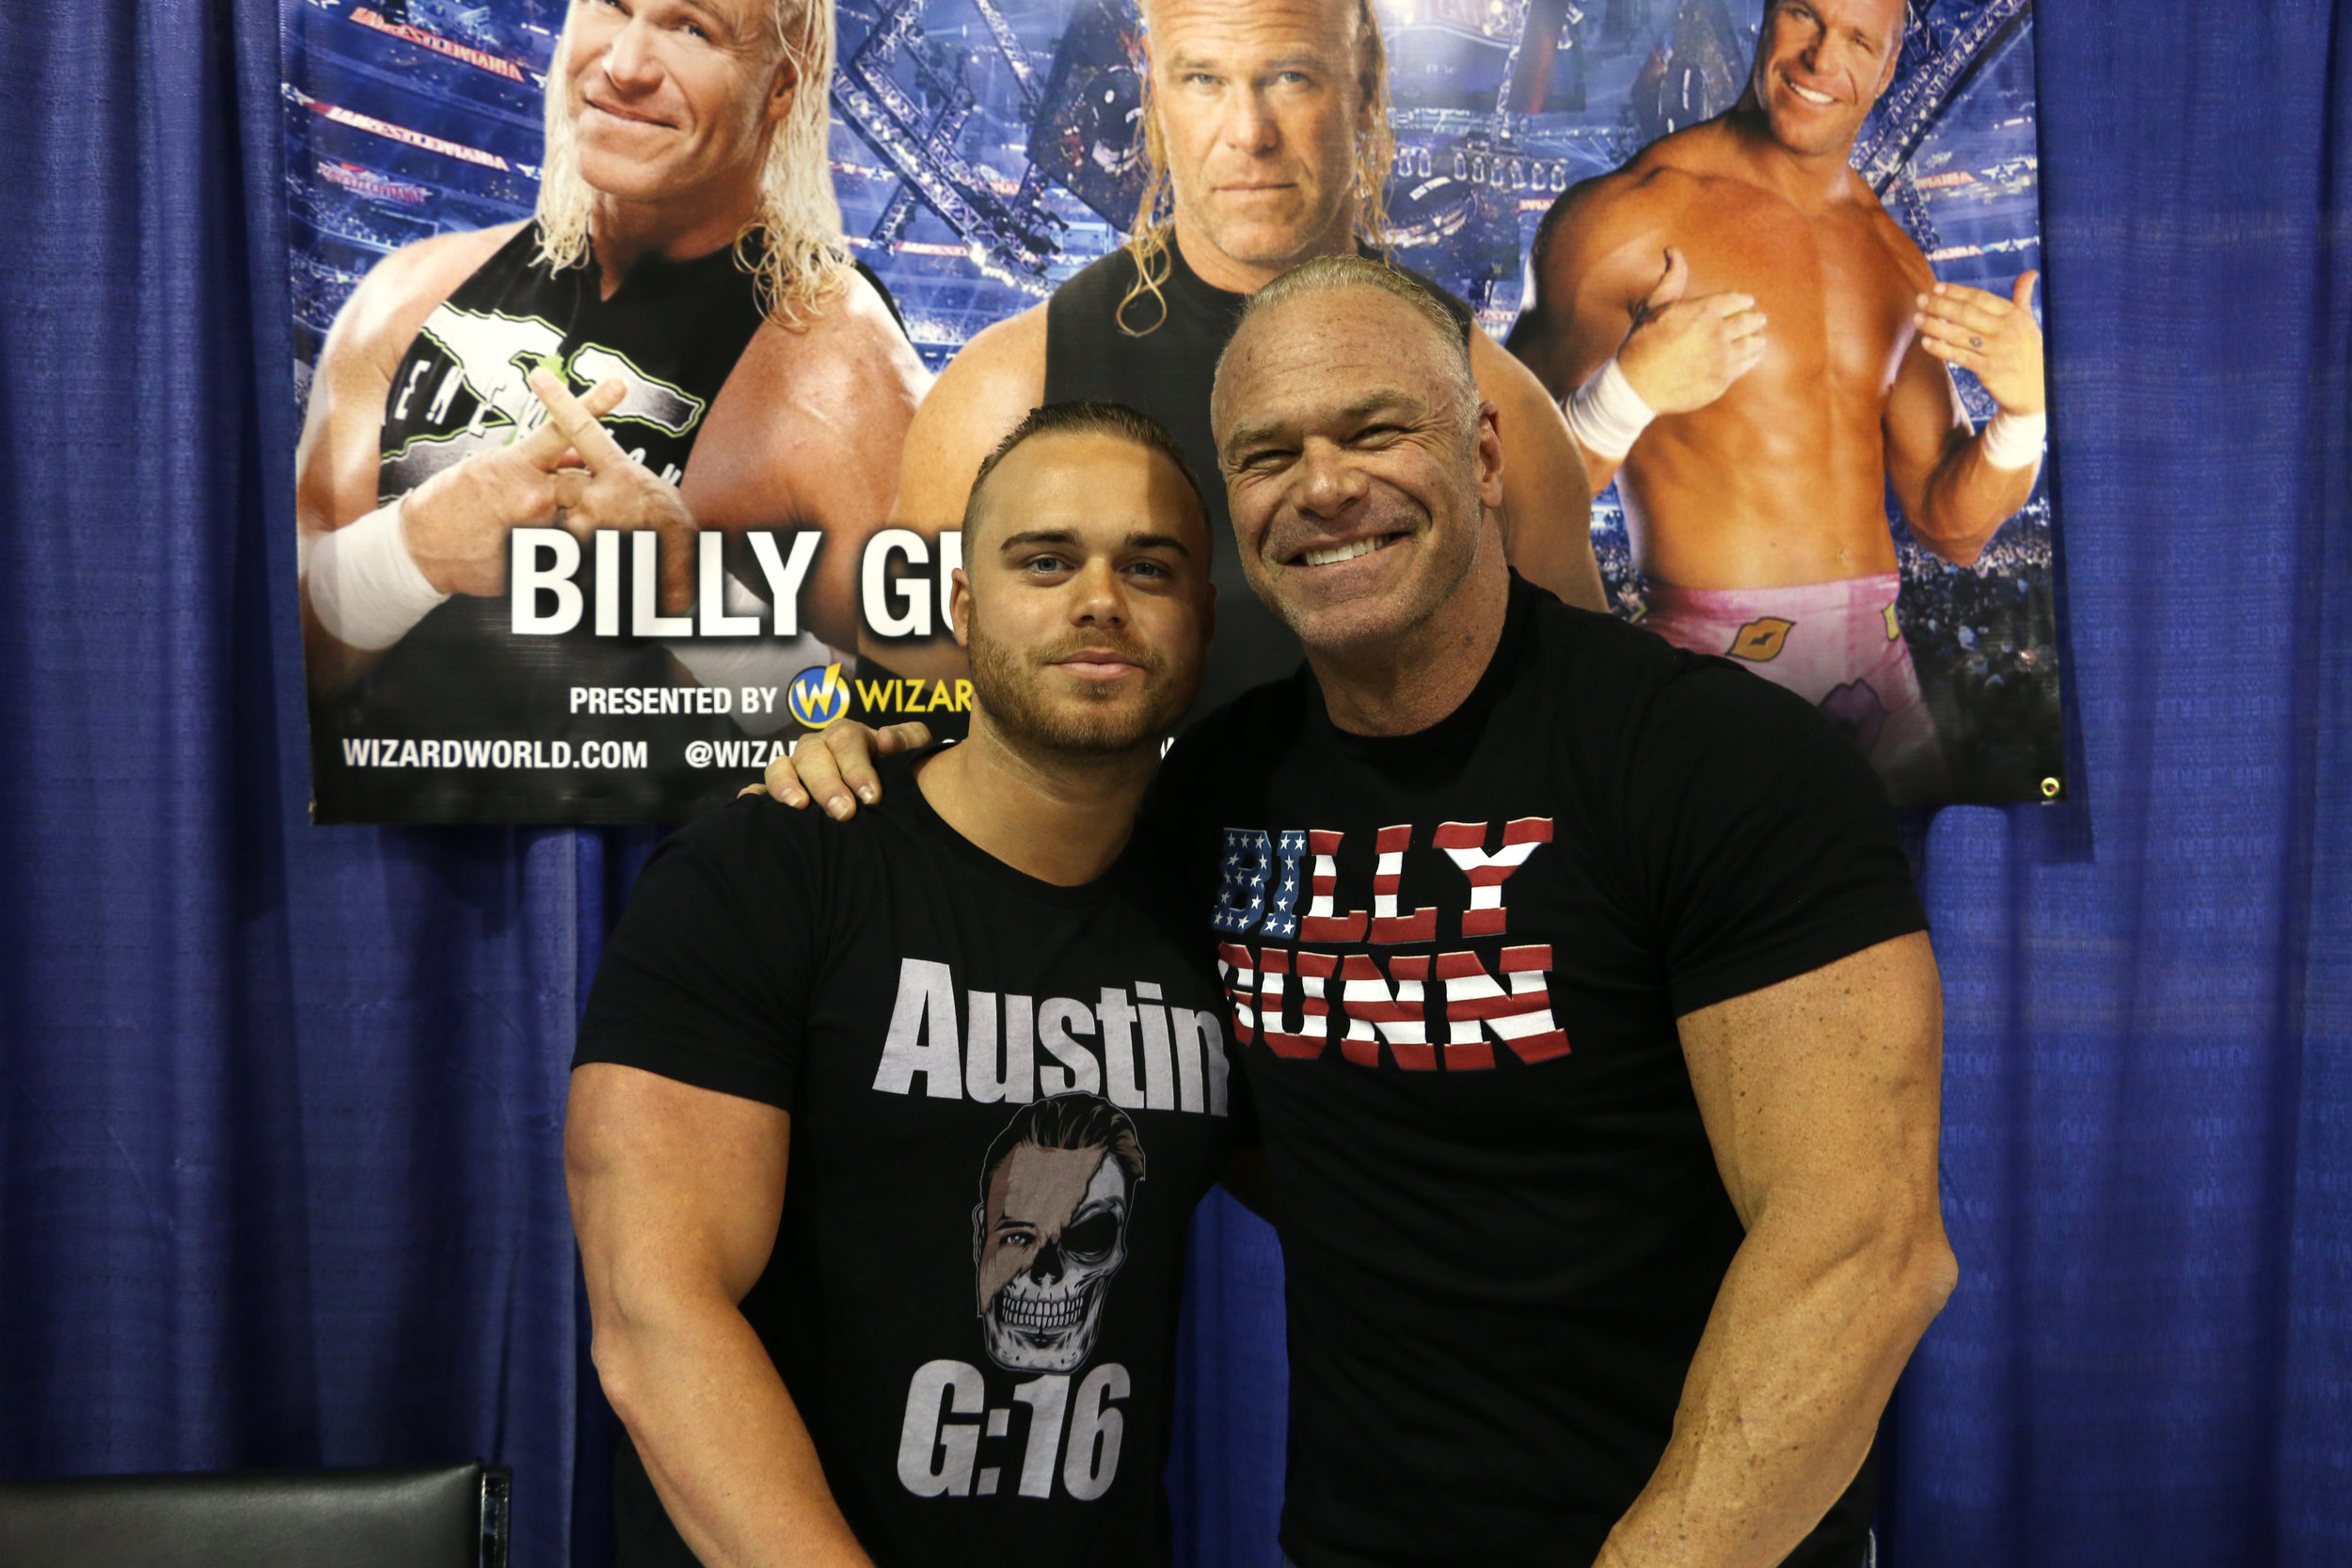 Former WWE superstar Billy Gunn, right, with his son Austin during their appearance at Wizard World Chicago at Donald E. Stephens Convention Center in Rosemont, Ill. on Friday, August 24, 2018.  (Photo by Mike Pankow)